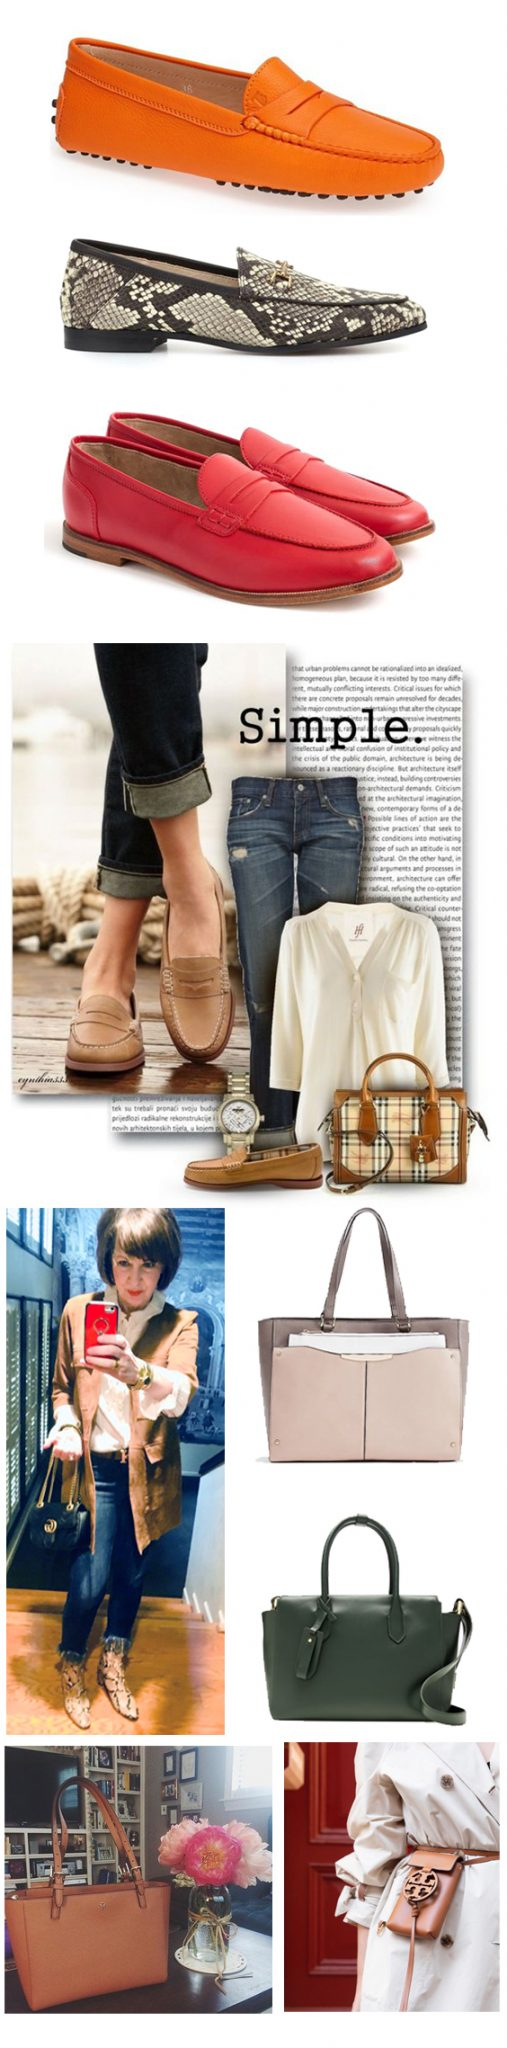 shoes, loafers, fashion, jeans, purses, shoes